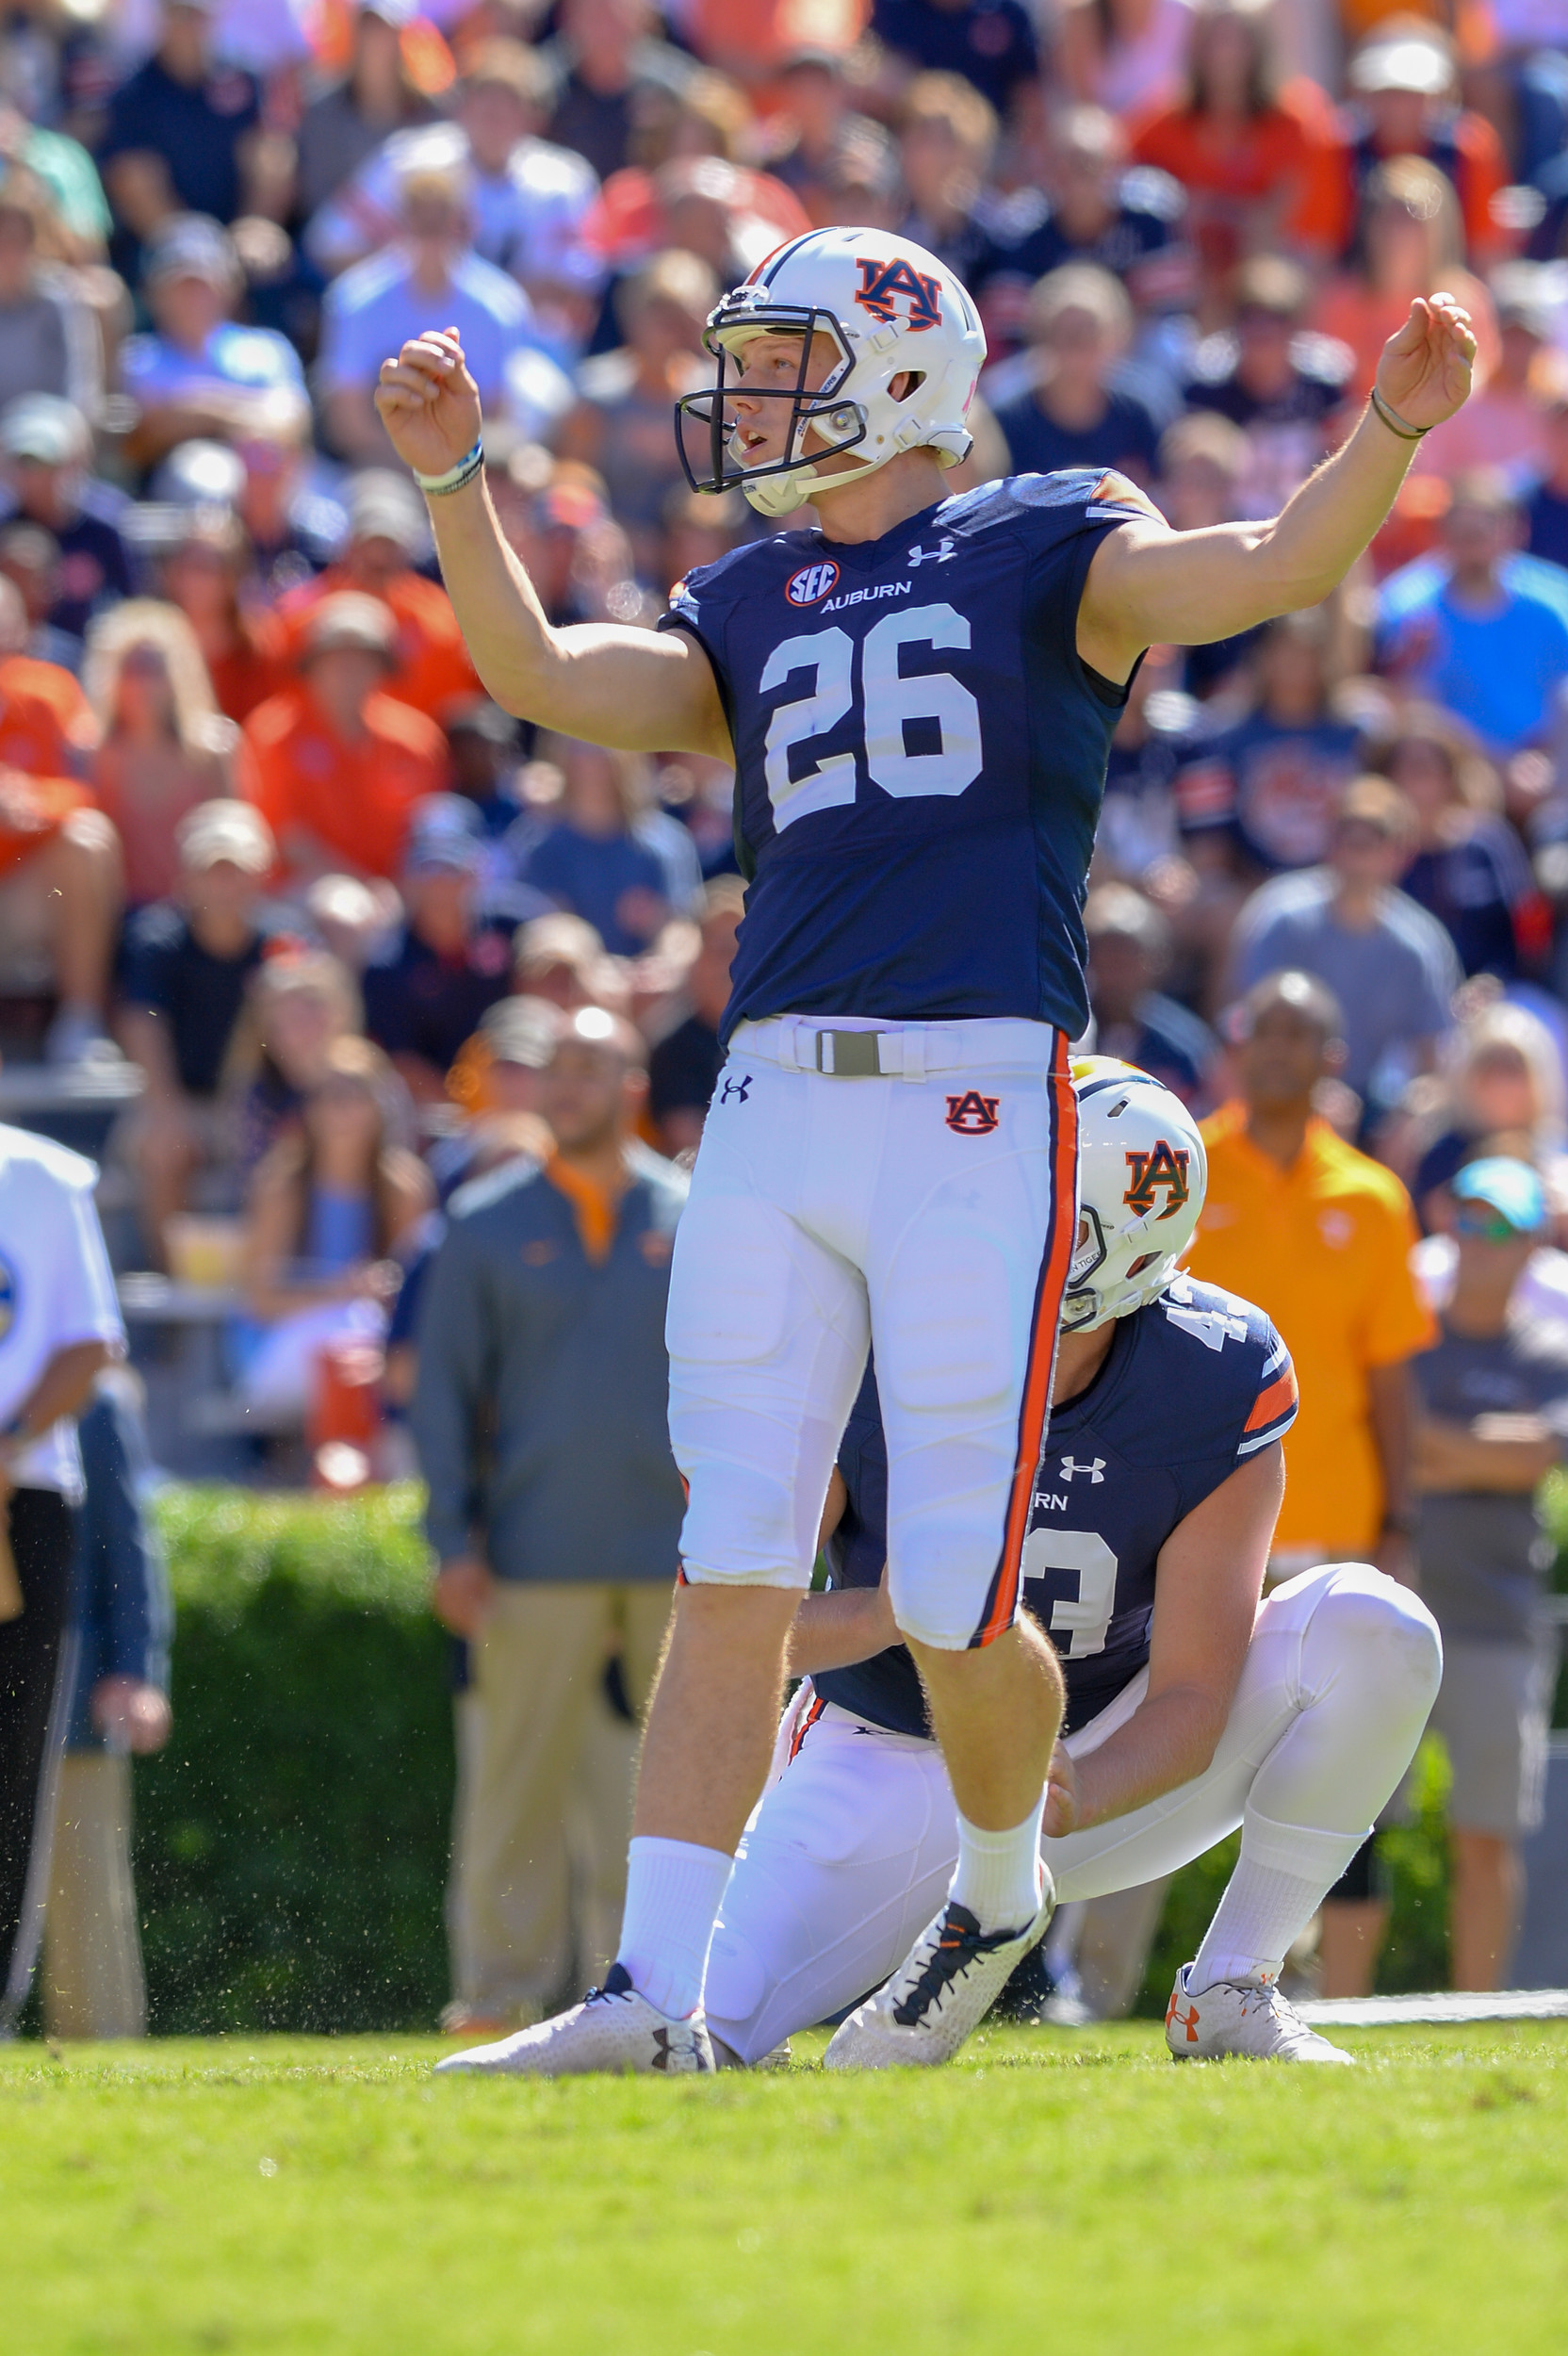 Auburn Tigers place kicker Anders Carlson (26) watches as is field goal attempt is good during the first half of Saturday's game, at Jordan-Hare Stadium in Auburn, AL. Daily Mountain Eagle -  Jeff Johnsey